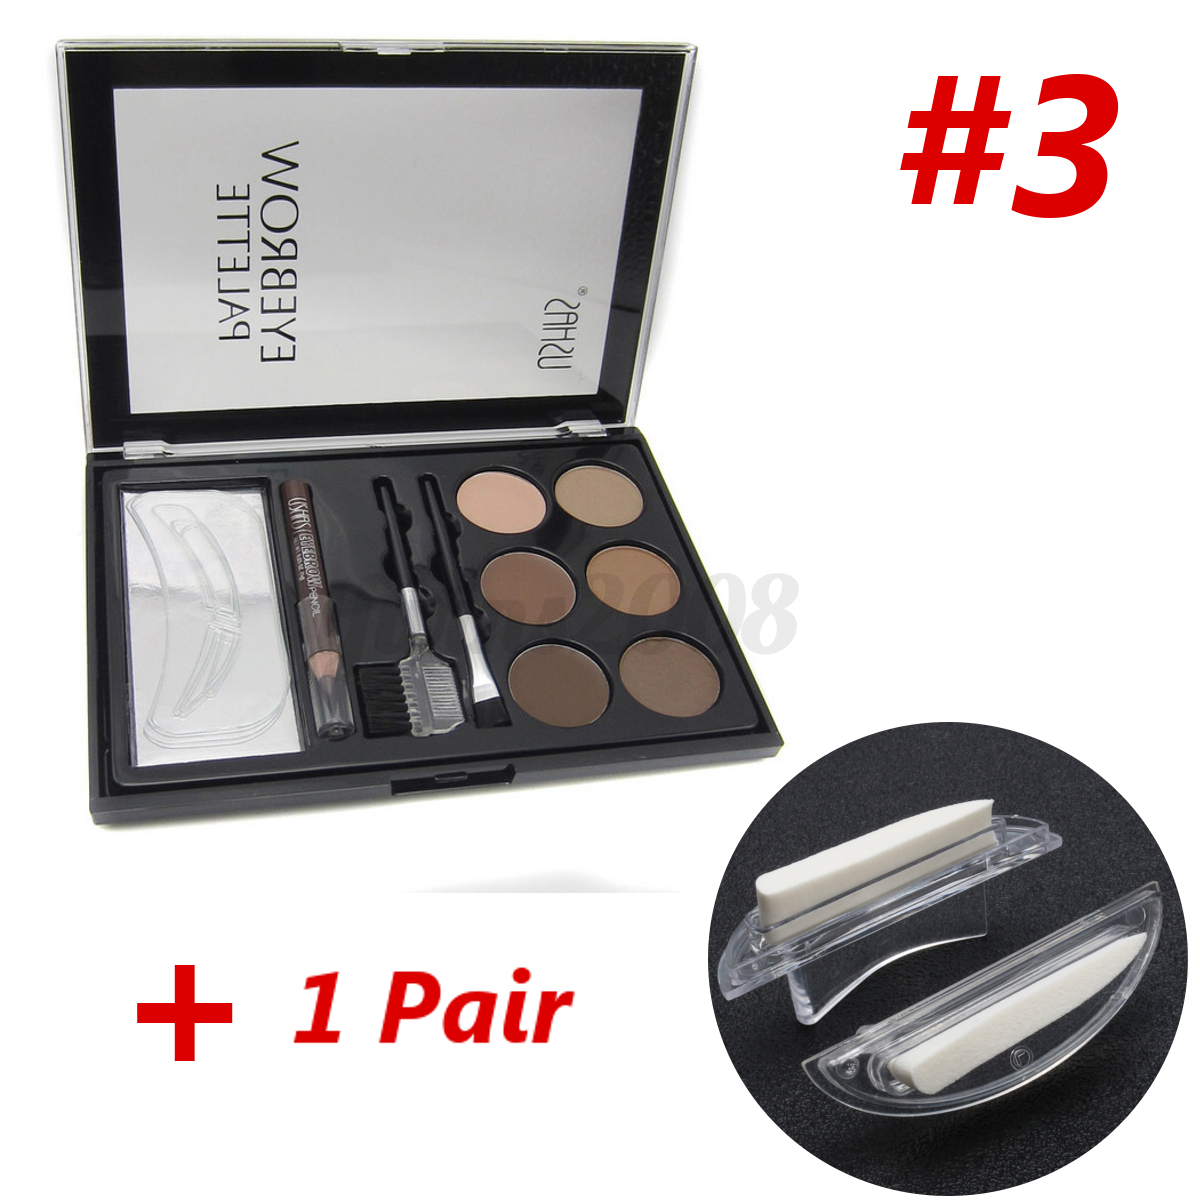 Palette-Poudre-Fard-Ombre-a-Sourcils-Stamping-Eyeliner-Pochoir-Tampon-Maquillage